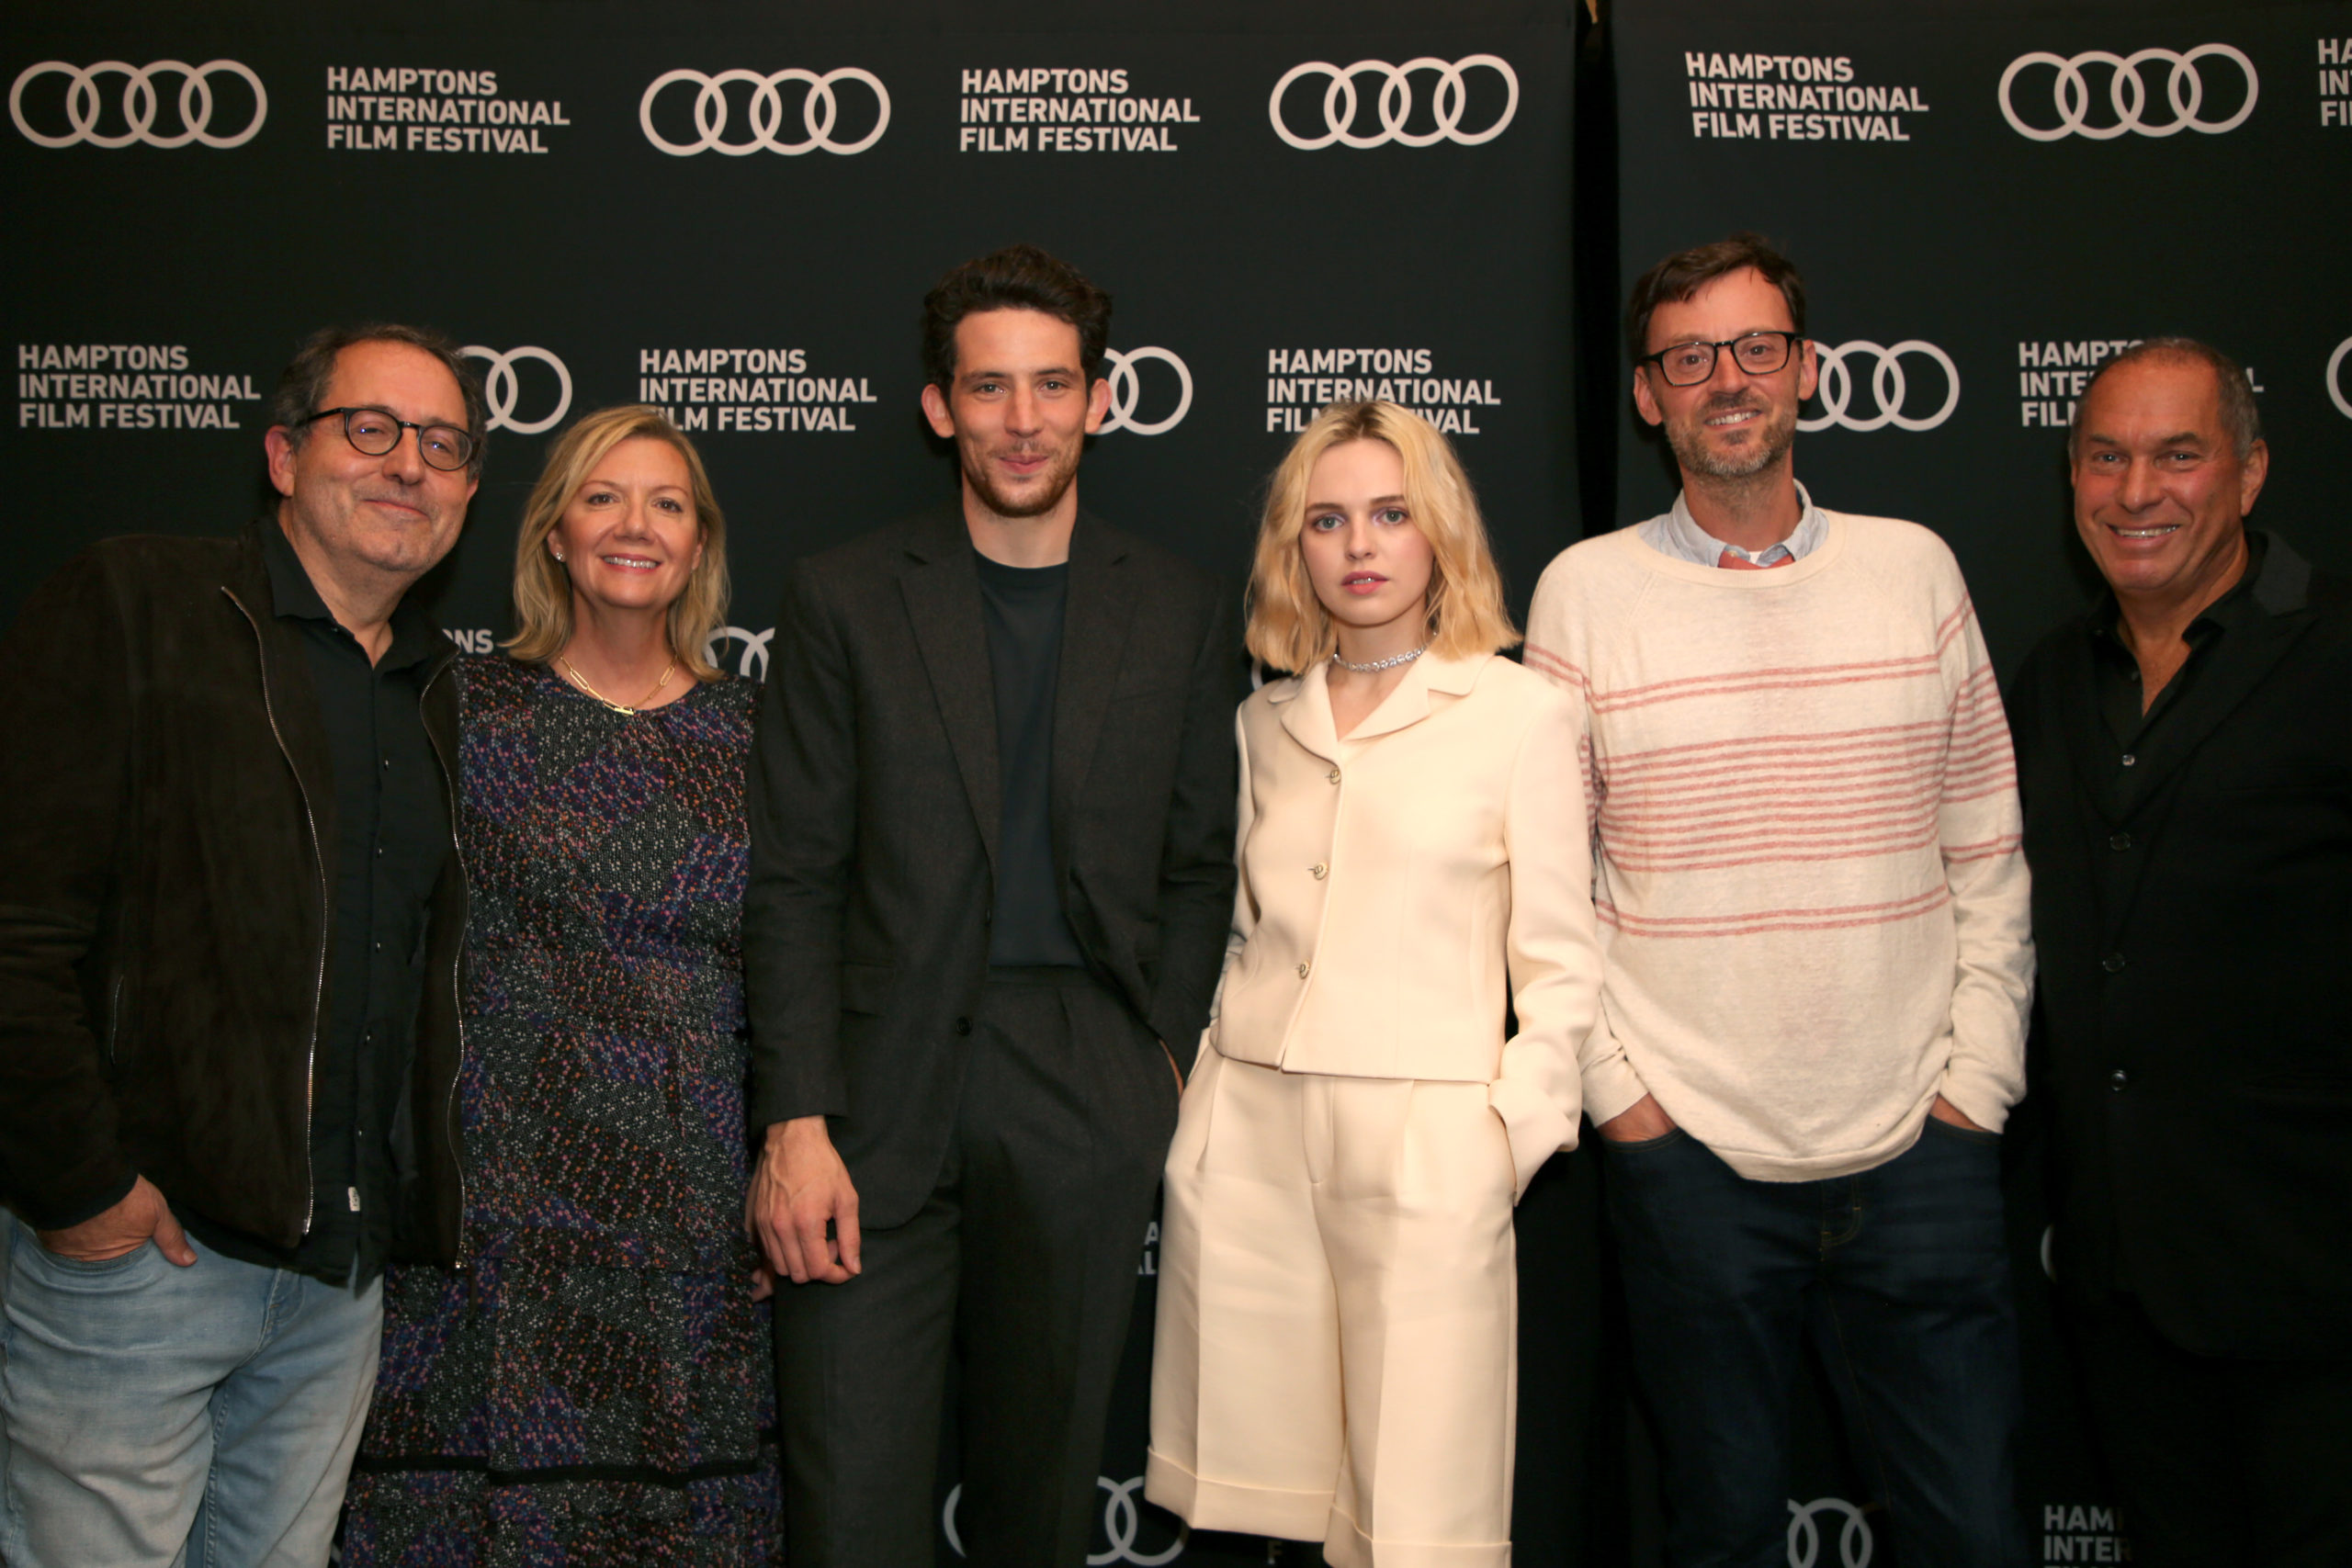 From left, Michael Barker, Anne Chaisson, Josh O'Connor, Odessa Young, David Nugent and Stuart Match Suna at the 29th annual Hamptons International Film Festival.